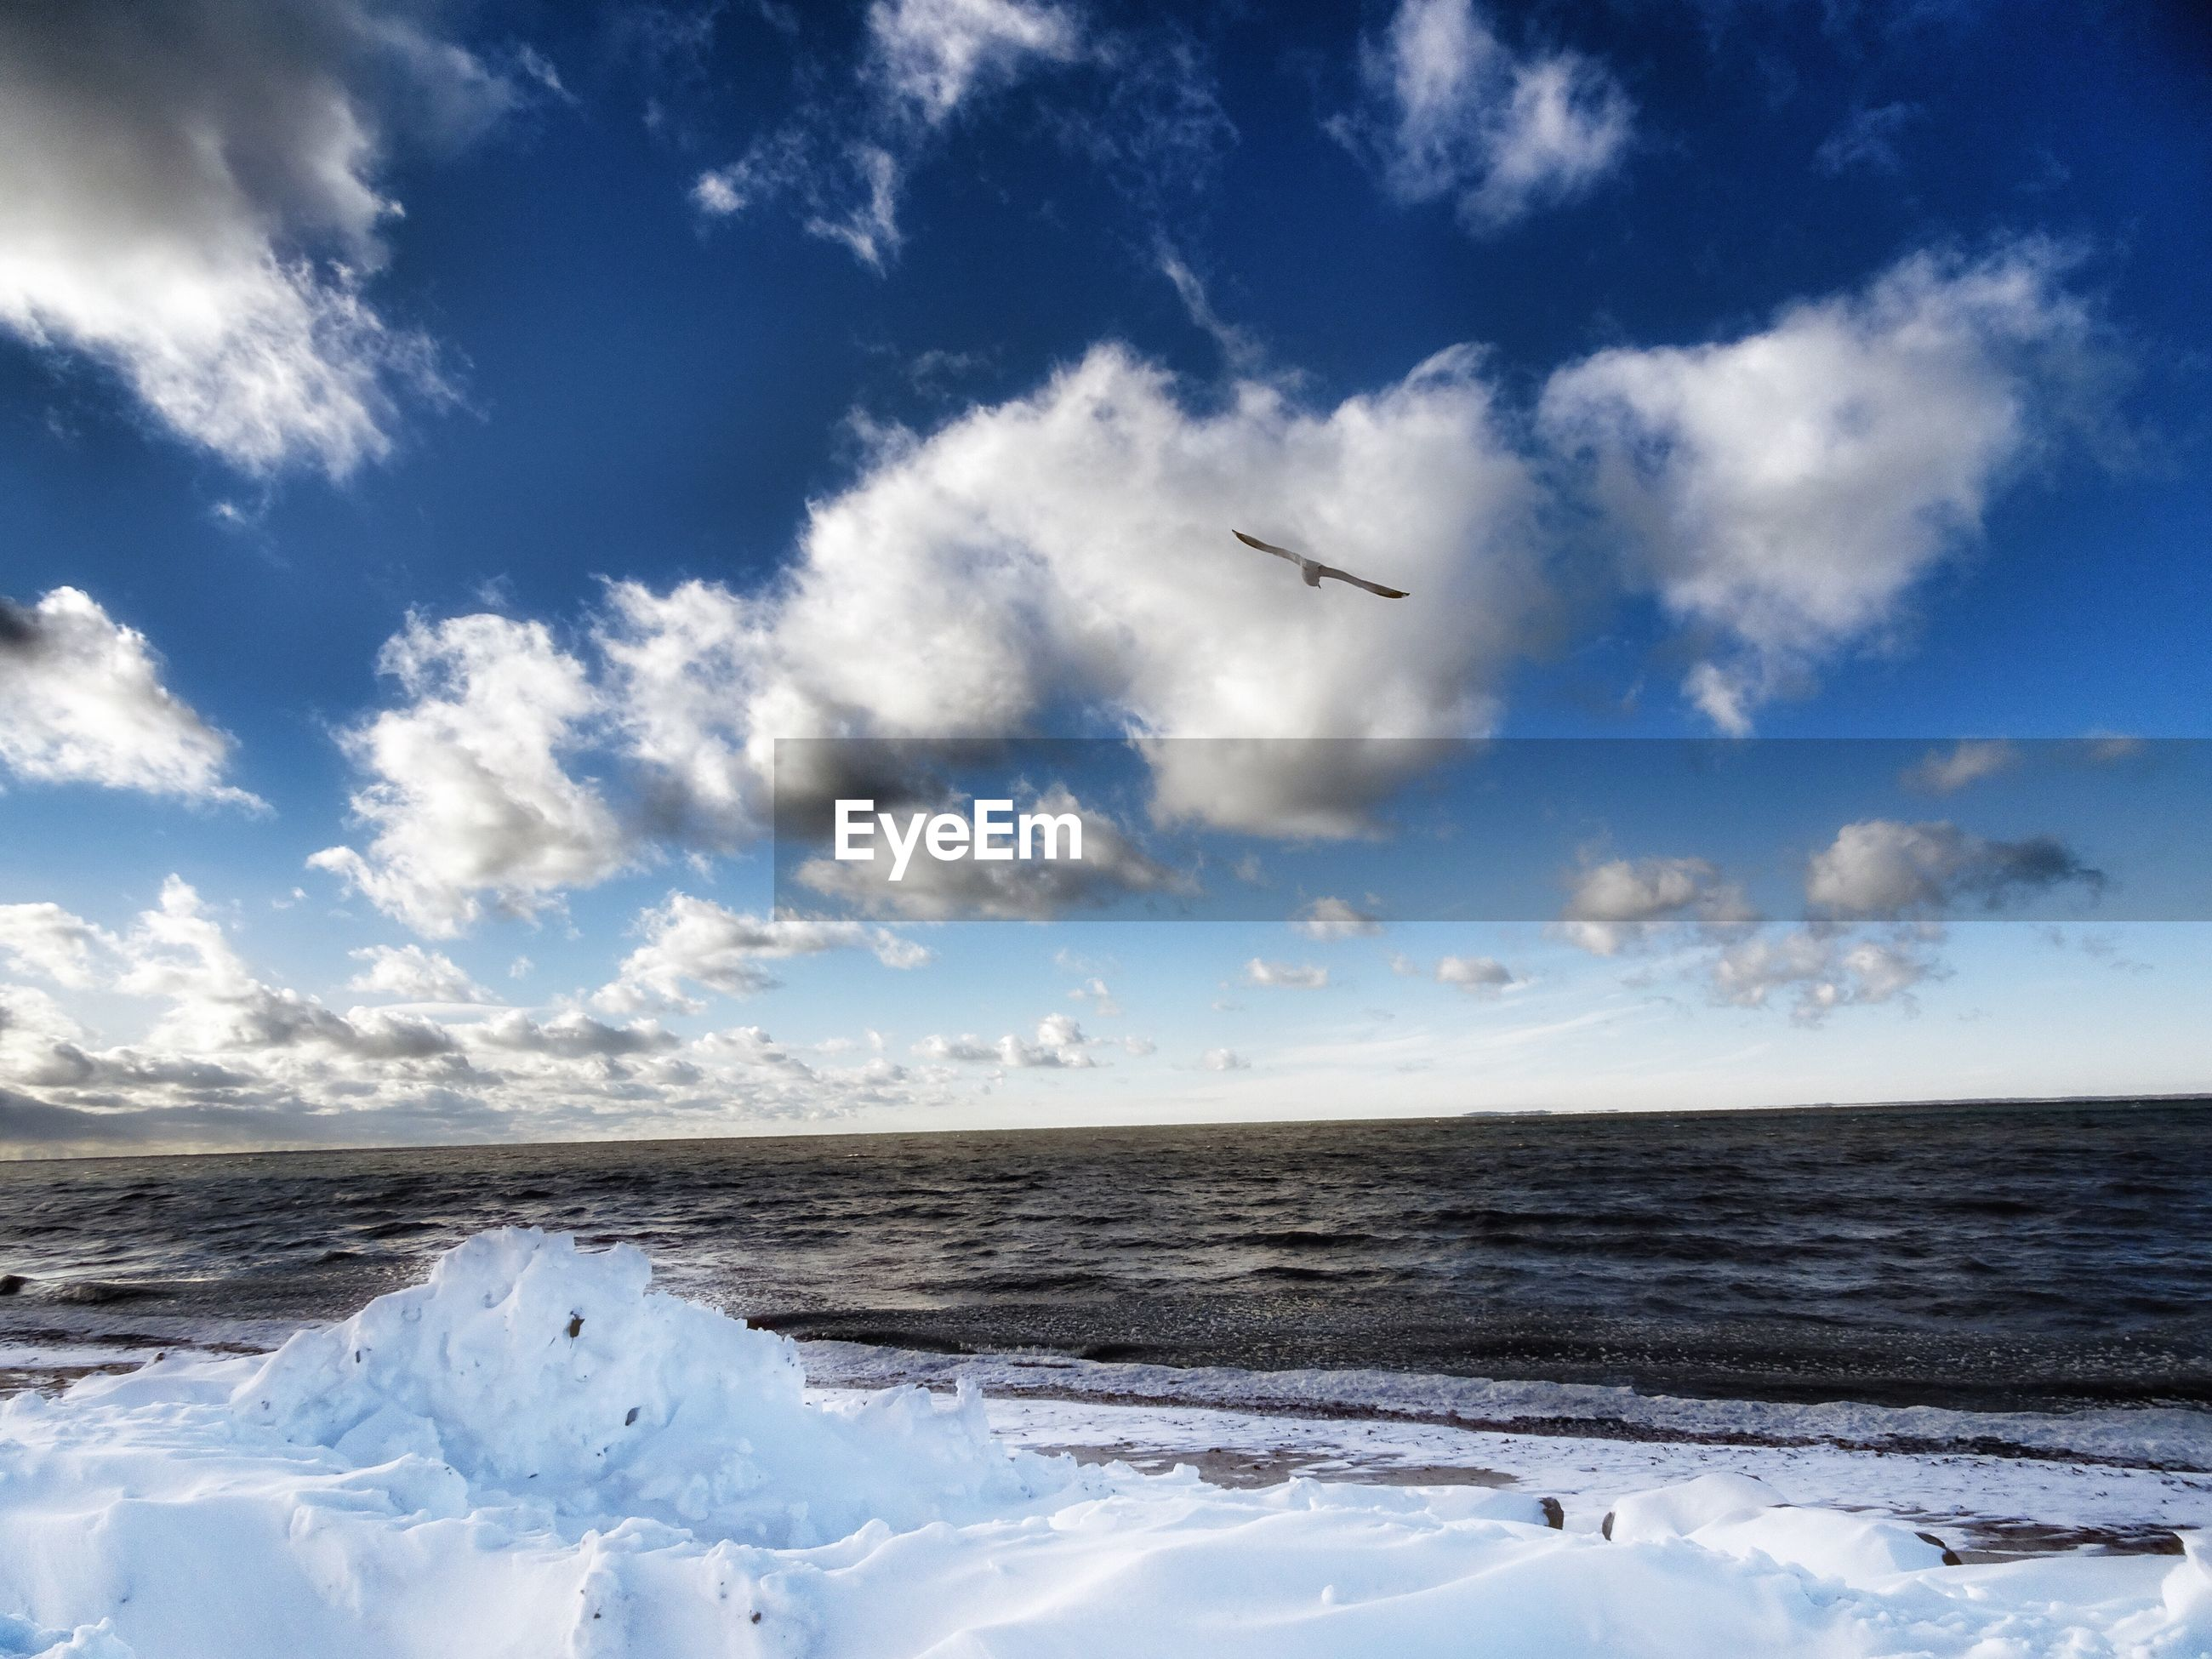 sky, nature, cloud - sky, beauty in nature, scenics, tranquility, no people, flying, outdoors, tranquil scene, sea, cold temperature, water, day, blue, winter, snow, airplane